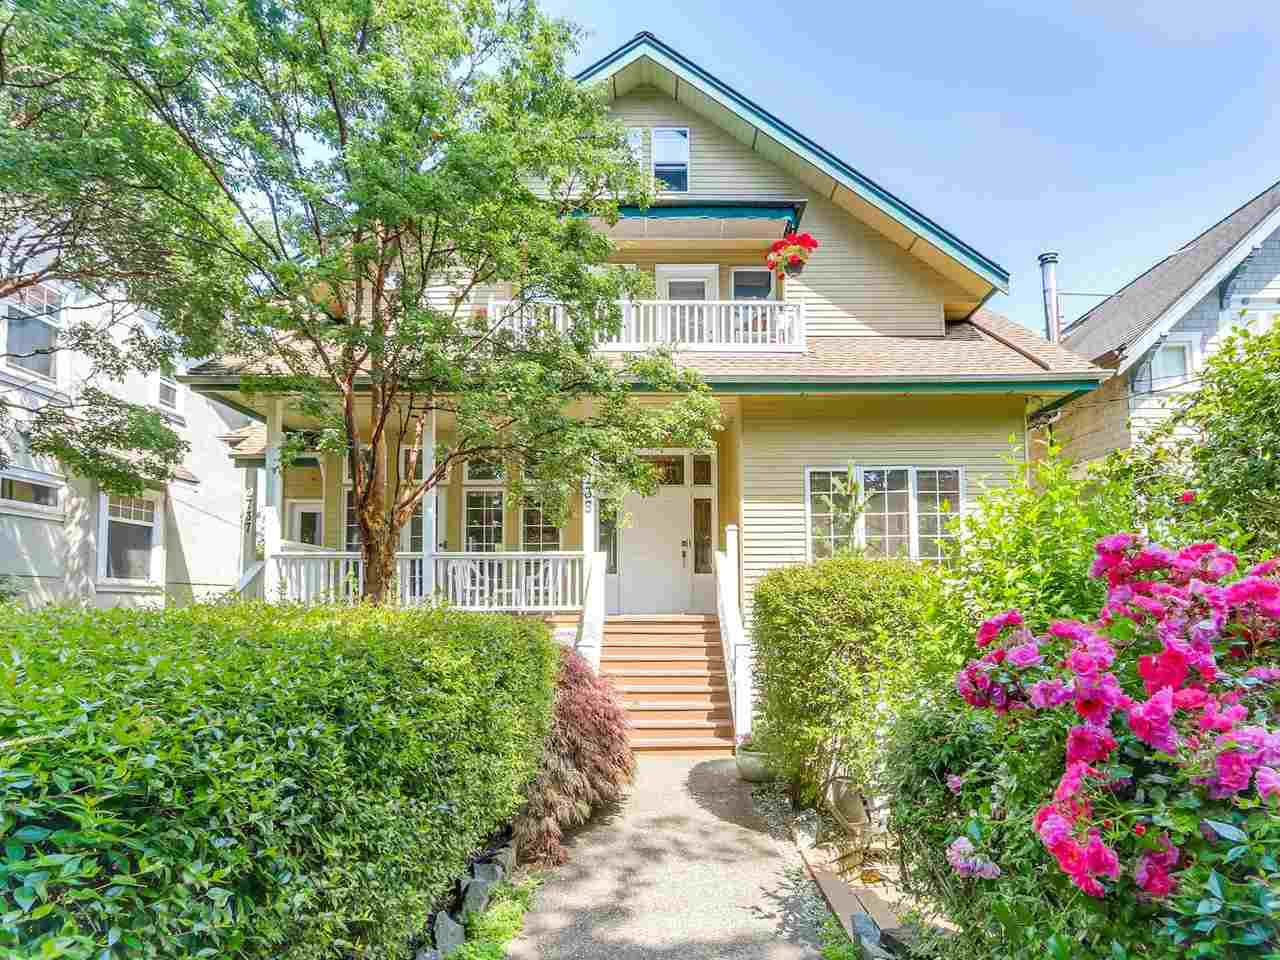 "Main Photo: 2735 W 6TH Avenue in Vancouver: Kitsilano Townhouse for sale in ""KITSILANO"" (Vancouver West)  : MLS® # R2190652"